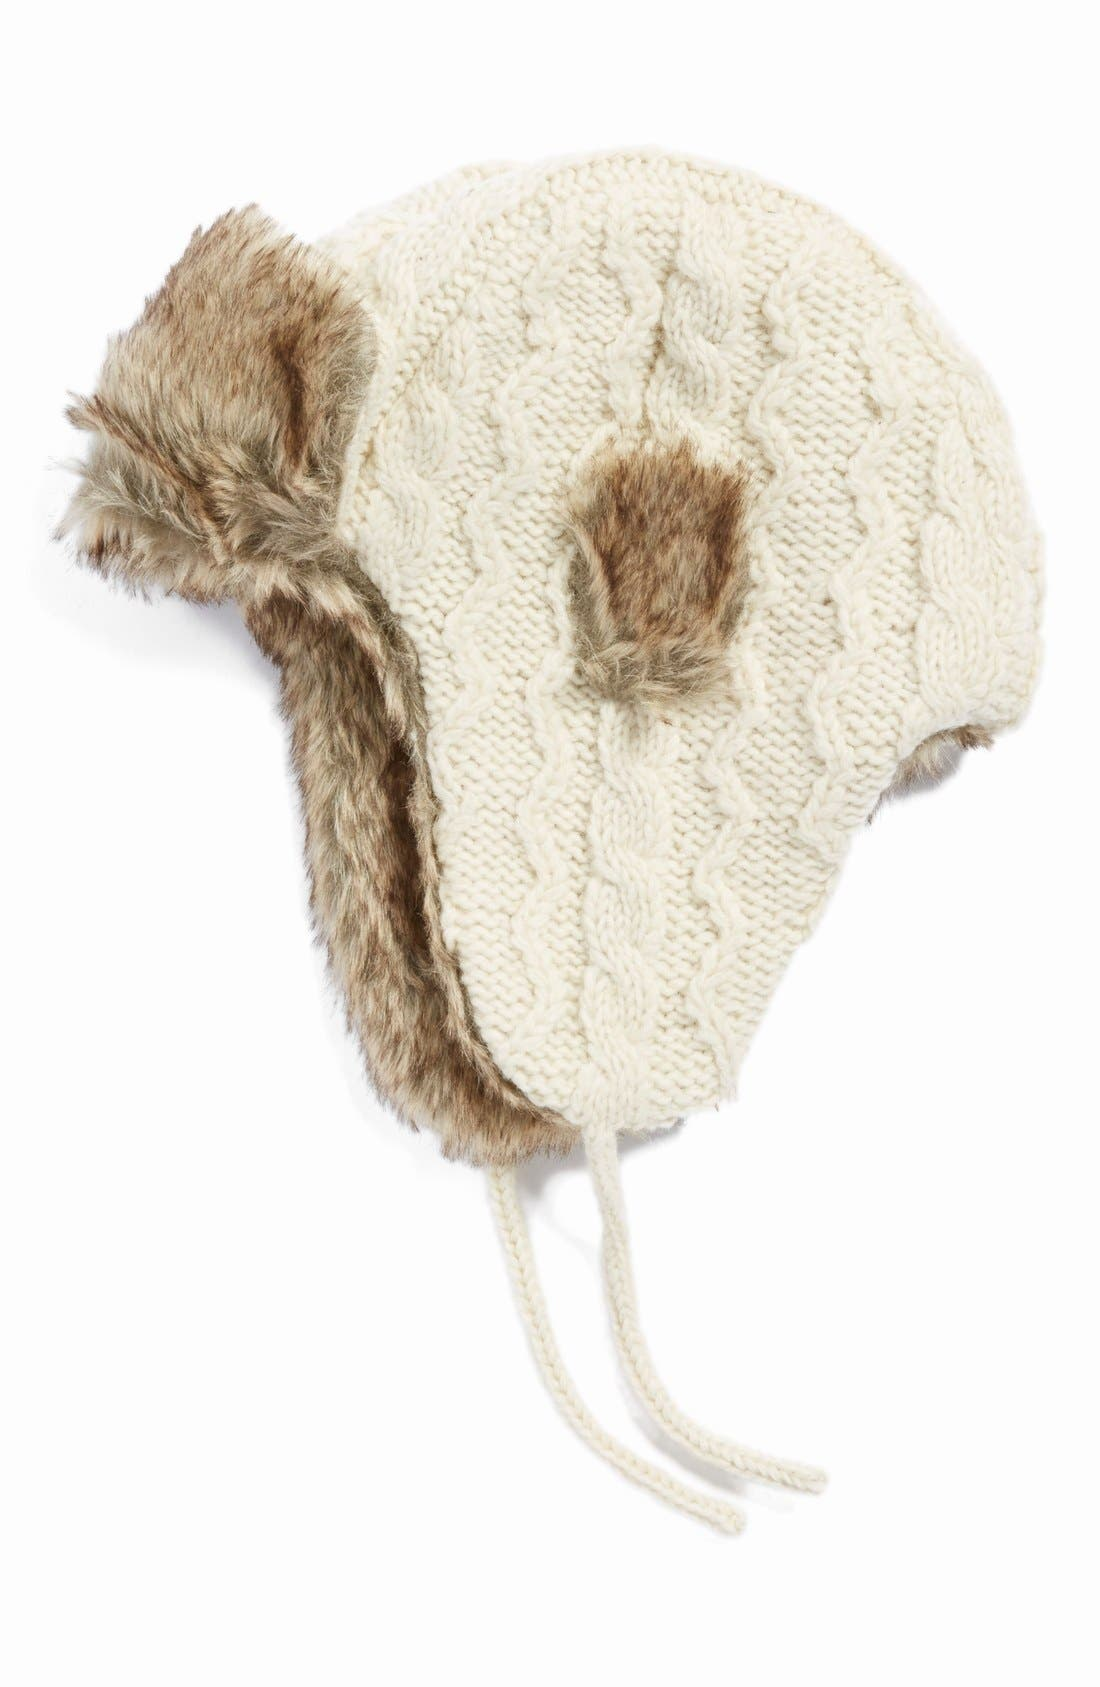 Nirvanna Designs Cable Knit Ear Flap Hat with Faux Fur Trim,                             Main thumbnail 1, color,                             White